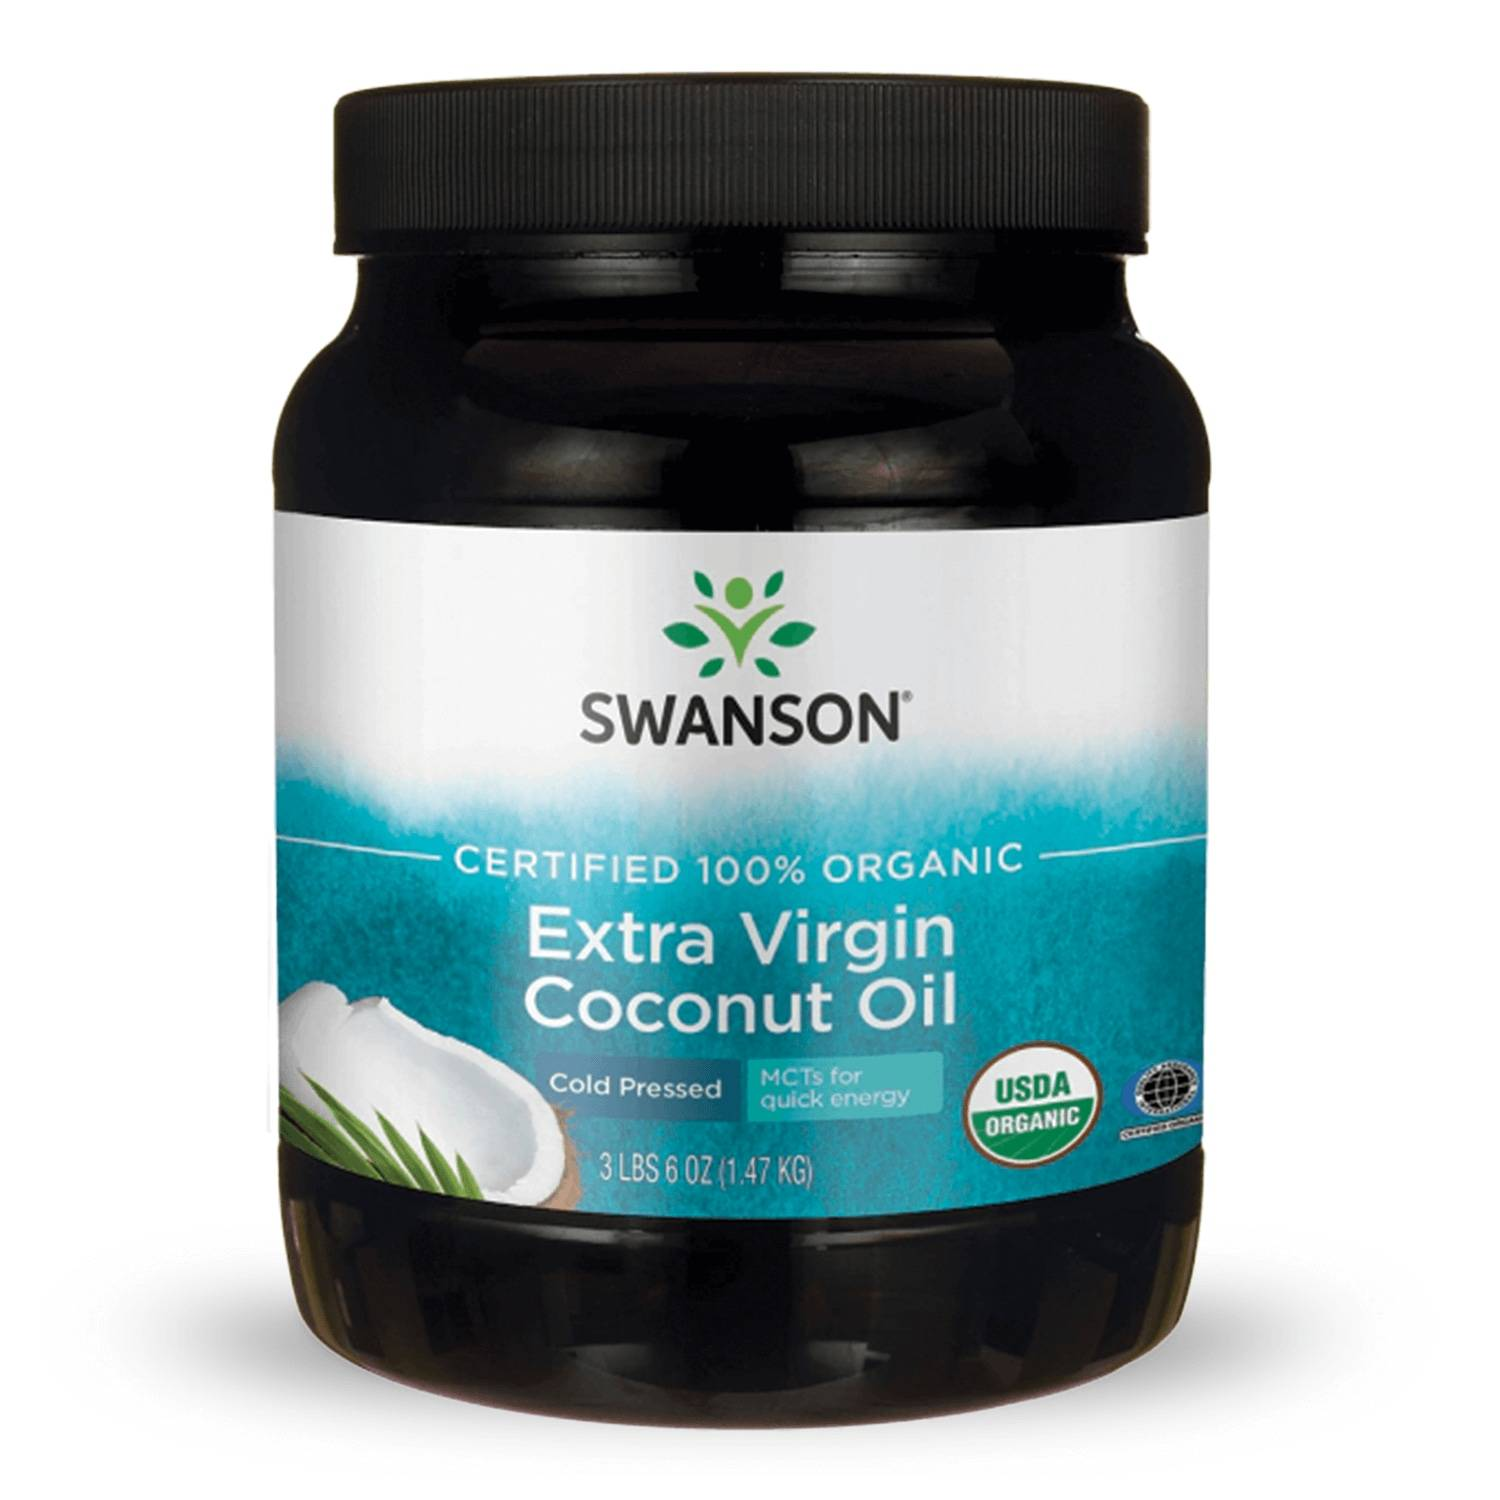 Swanson Organic Certified 100% Extra Virgin Coconut Oil - Cold Pressed 3 lb 6 oz Solid Oil Essential Fatty Acids